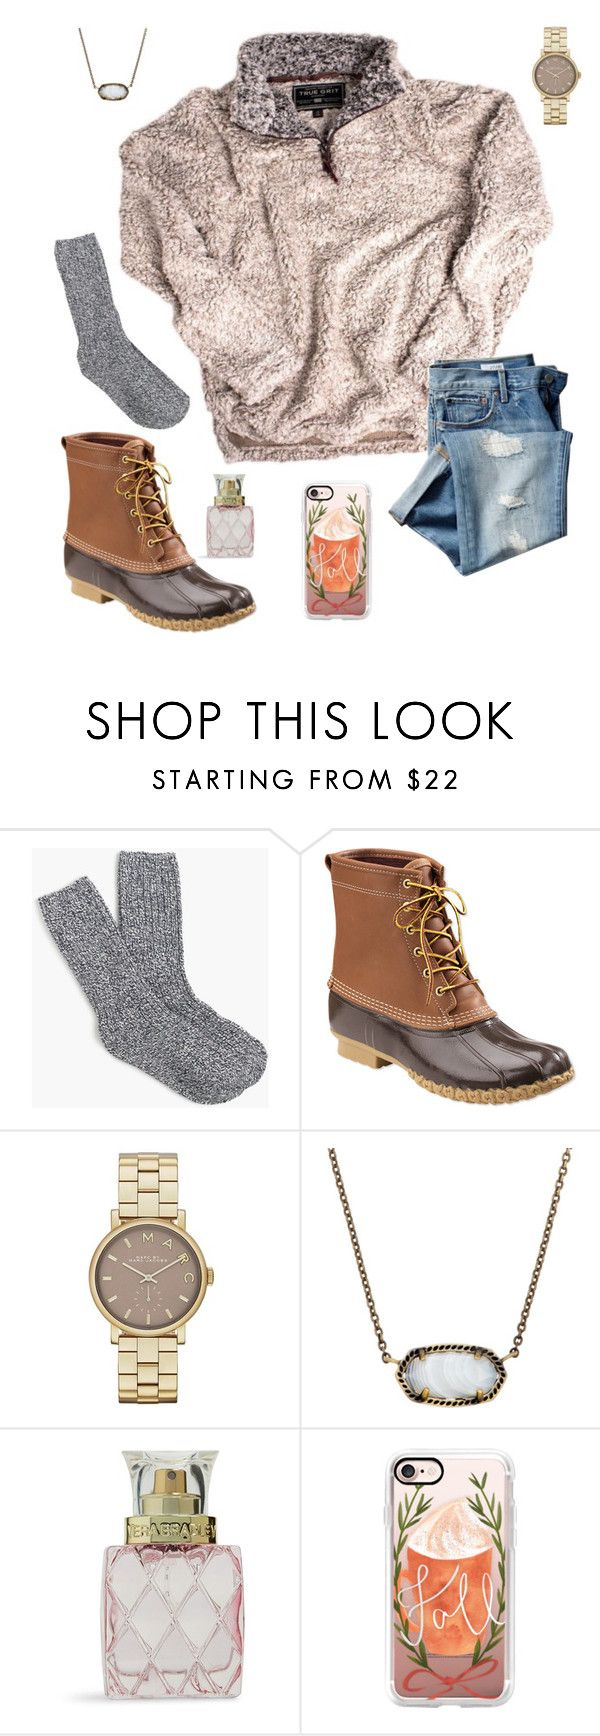 """""""Someone please get me a True Grit pullover"""" by outfitsbyalaina ❤ liked on Polyvore featuring J.Crew, Gap, L.L.Bean, Marc Jacobs, Kendra Scott, Vera Bradley and Casetify"""